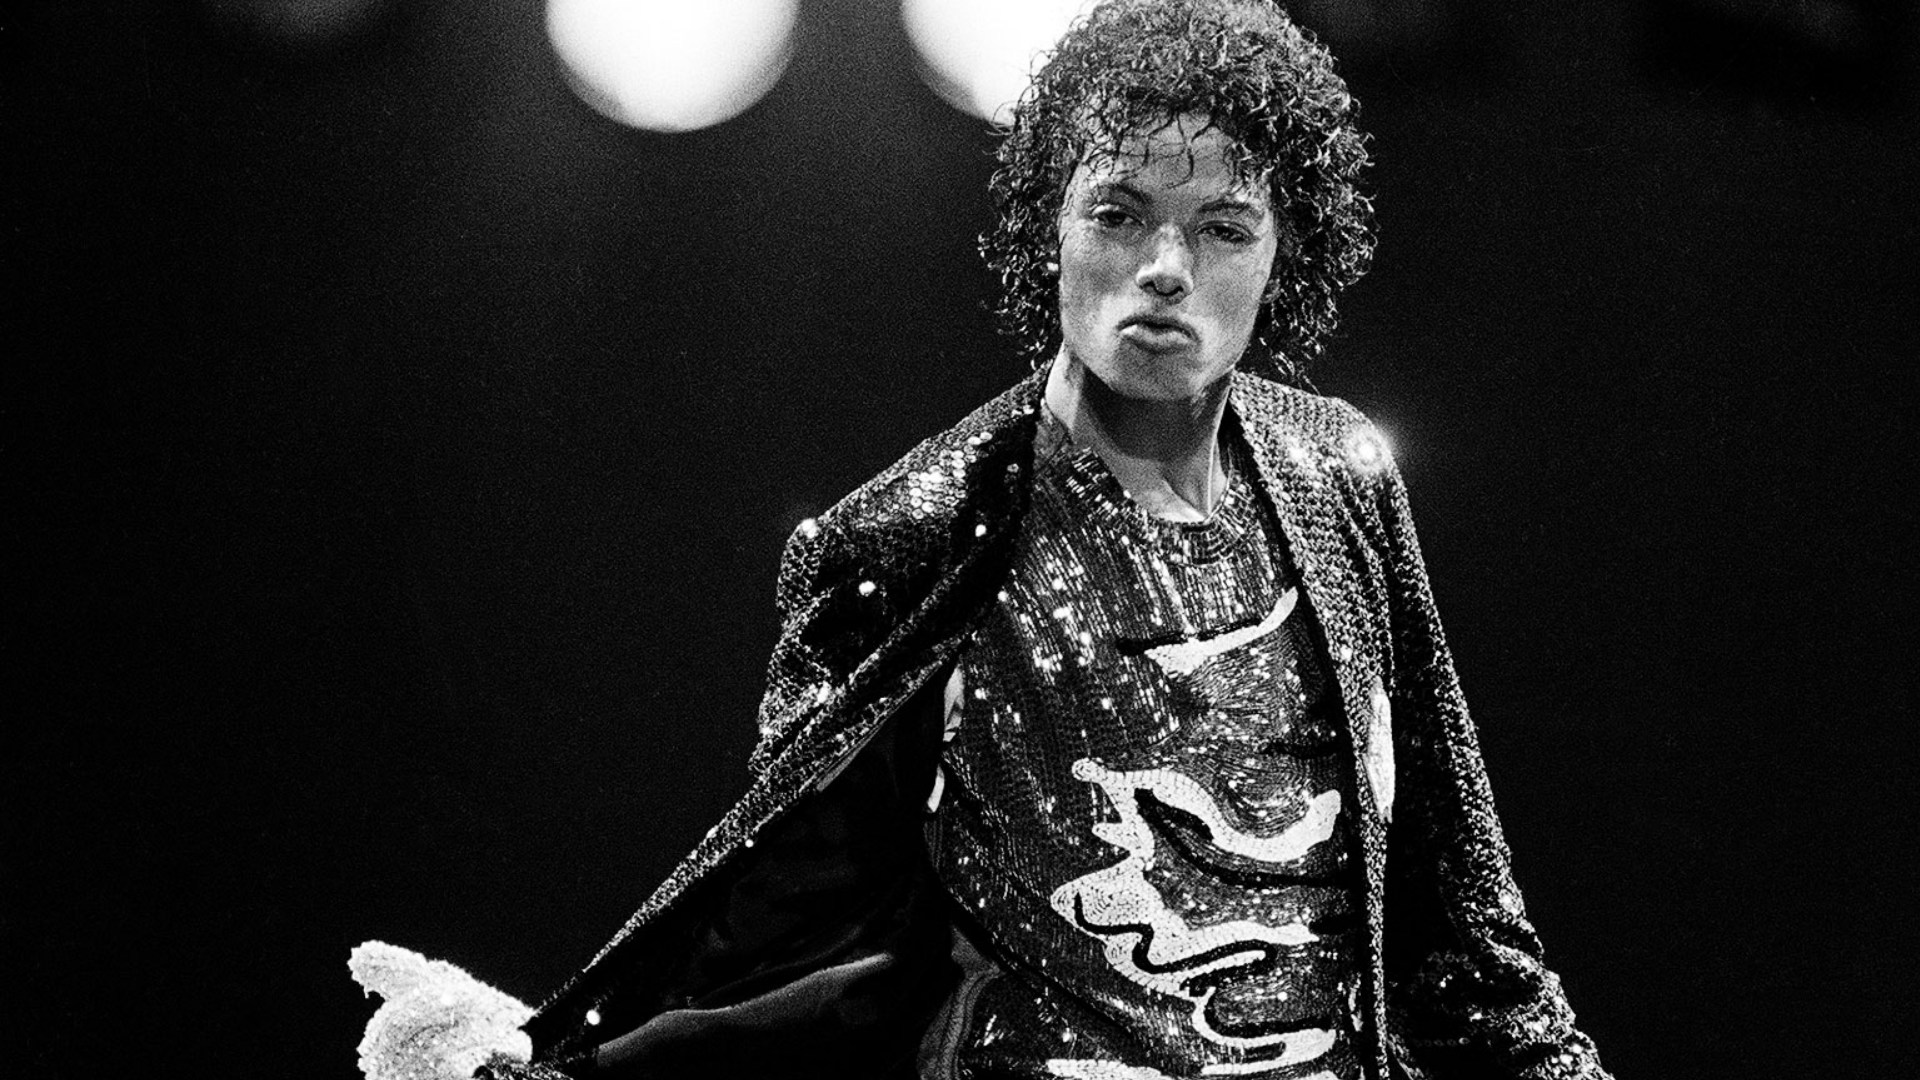 michael jackson full hd wallpaper and background image | 1920x1080